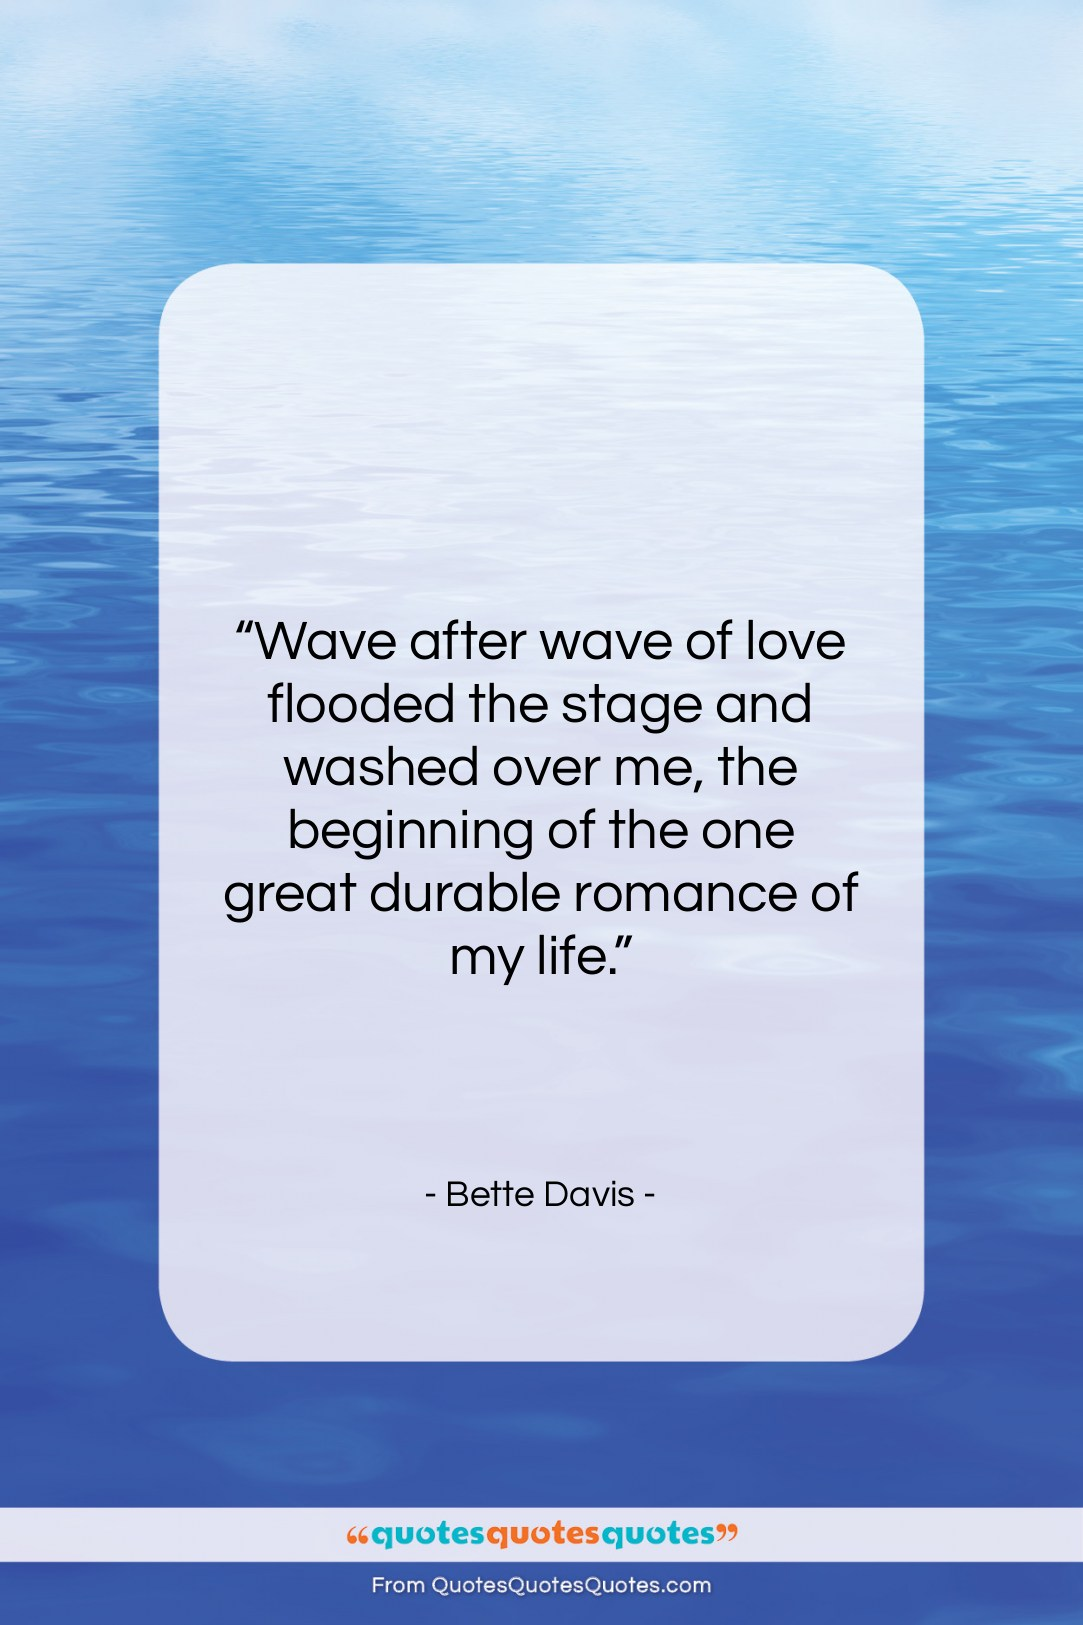 """Bette Davis quote: """"Wave after wave of love flooded the…""""- at QuotesQuotesQuotes.com"""